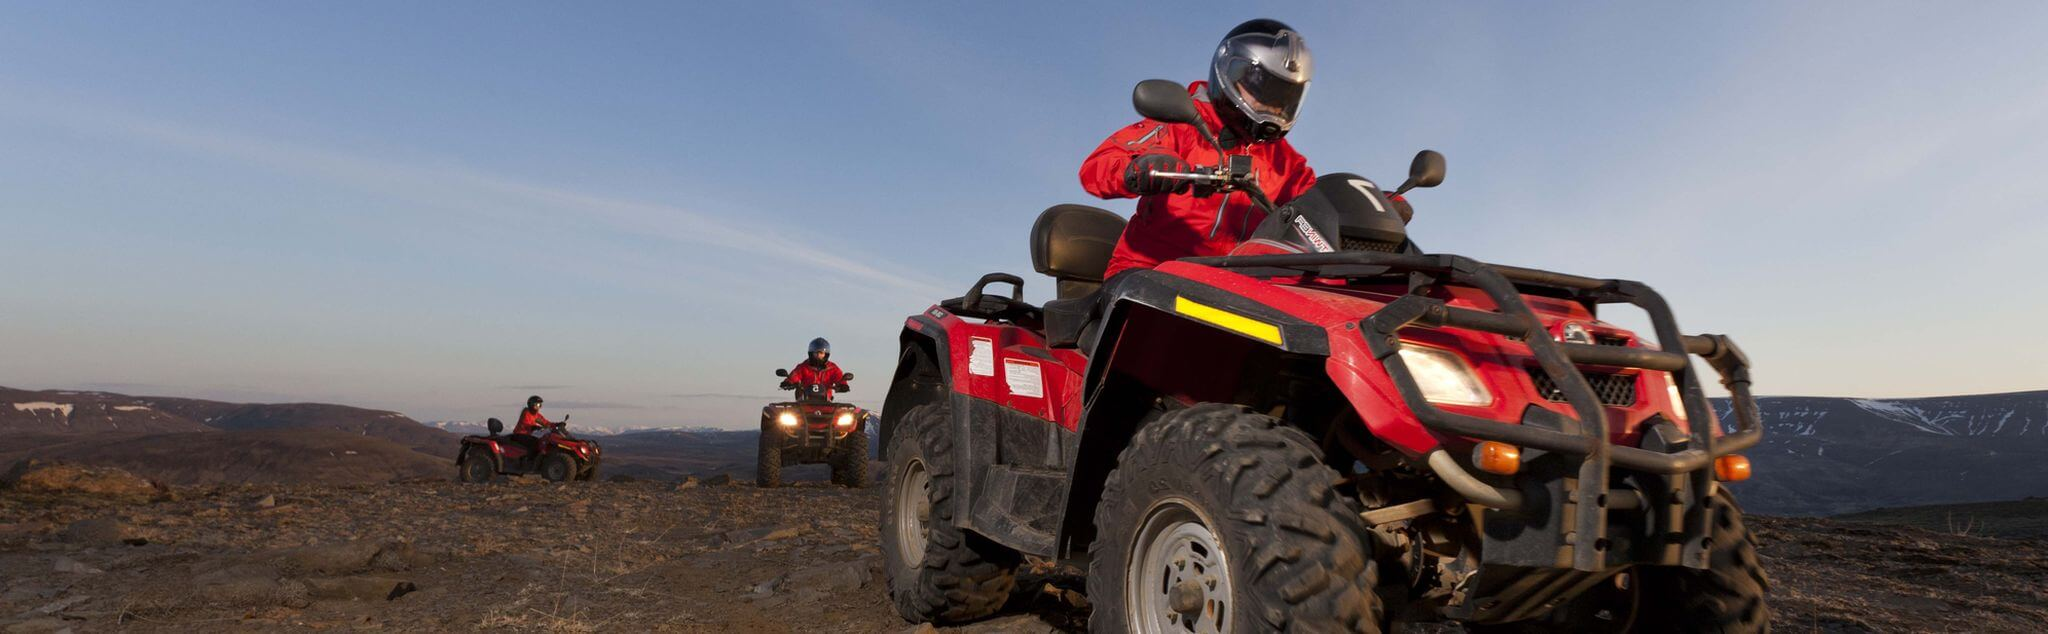 Quad Biking in Alicante